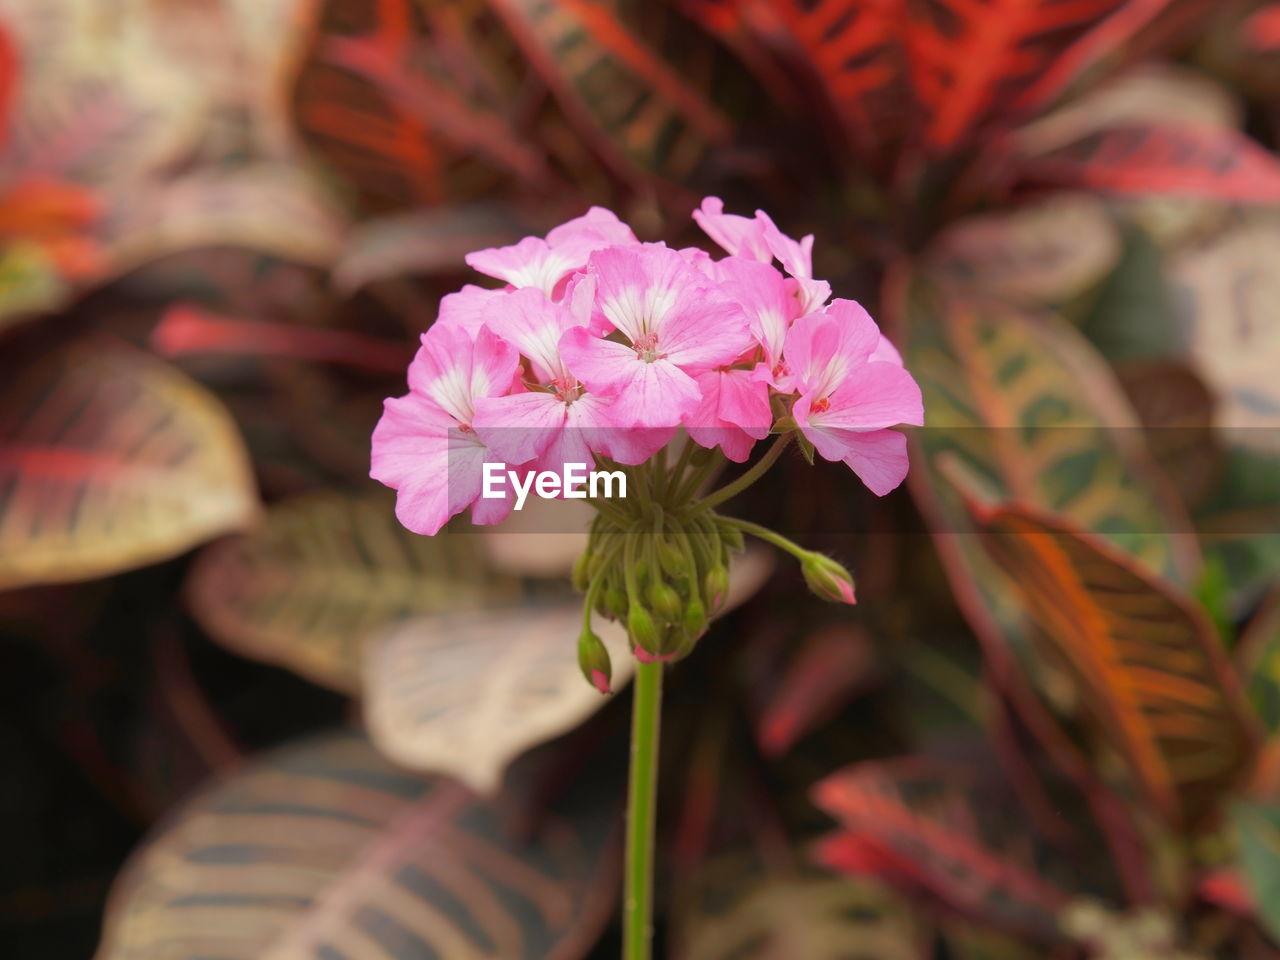 flower, petal, fragility, beauty in nature, nature, pink color, growth, flower head, freshness, no people, close-up, leaf, outdoors, plant, day, blooming